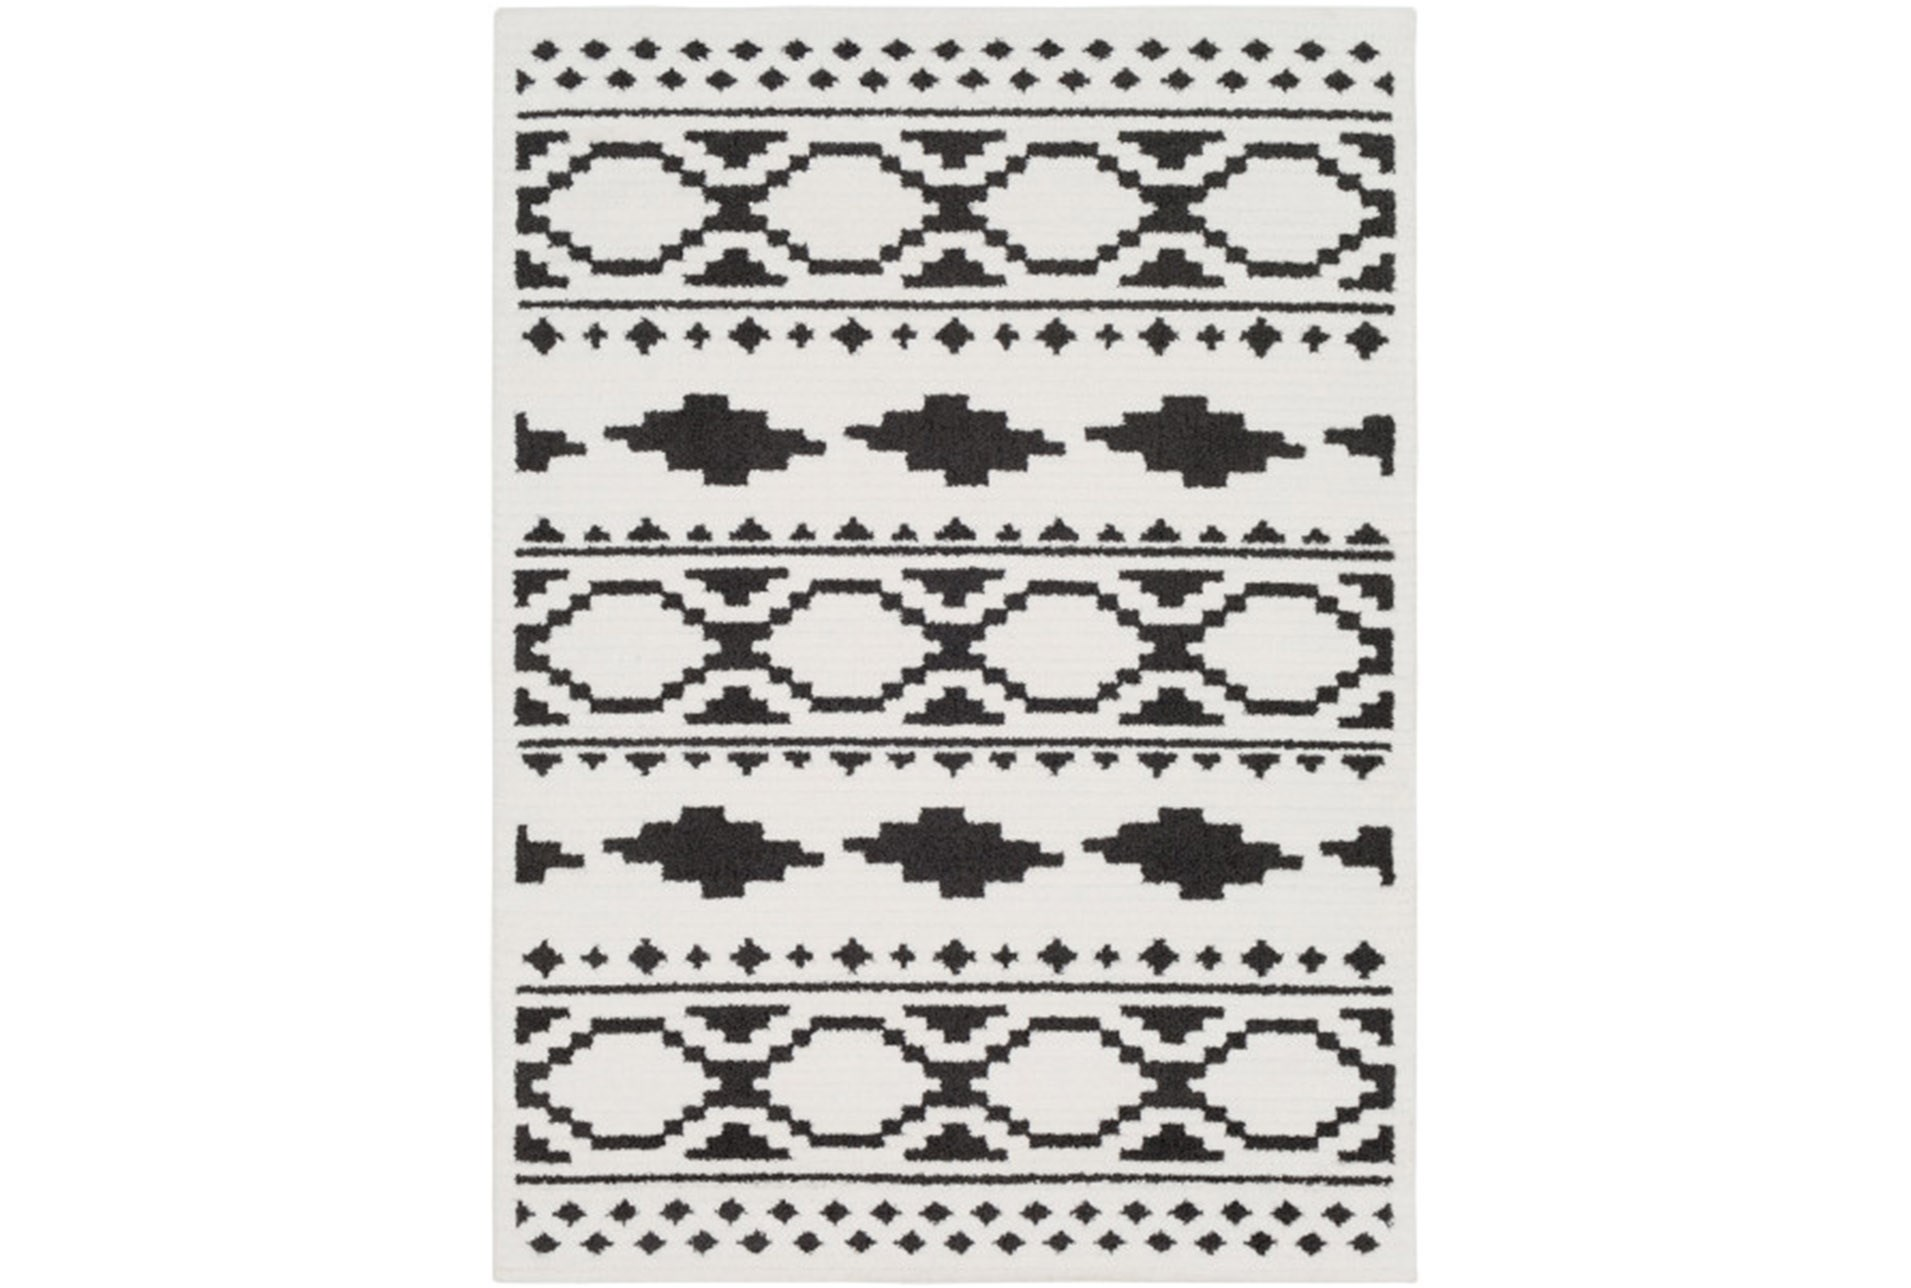 94x123 Rug Graphic Tile Black White